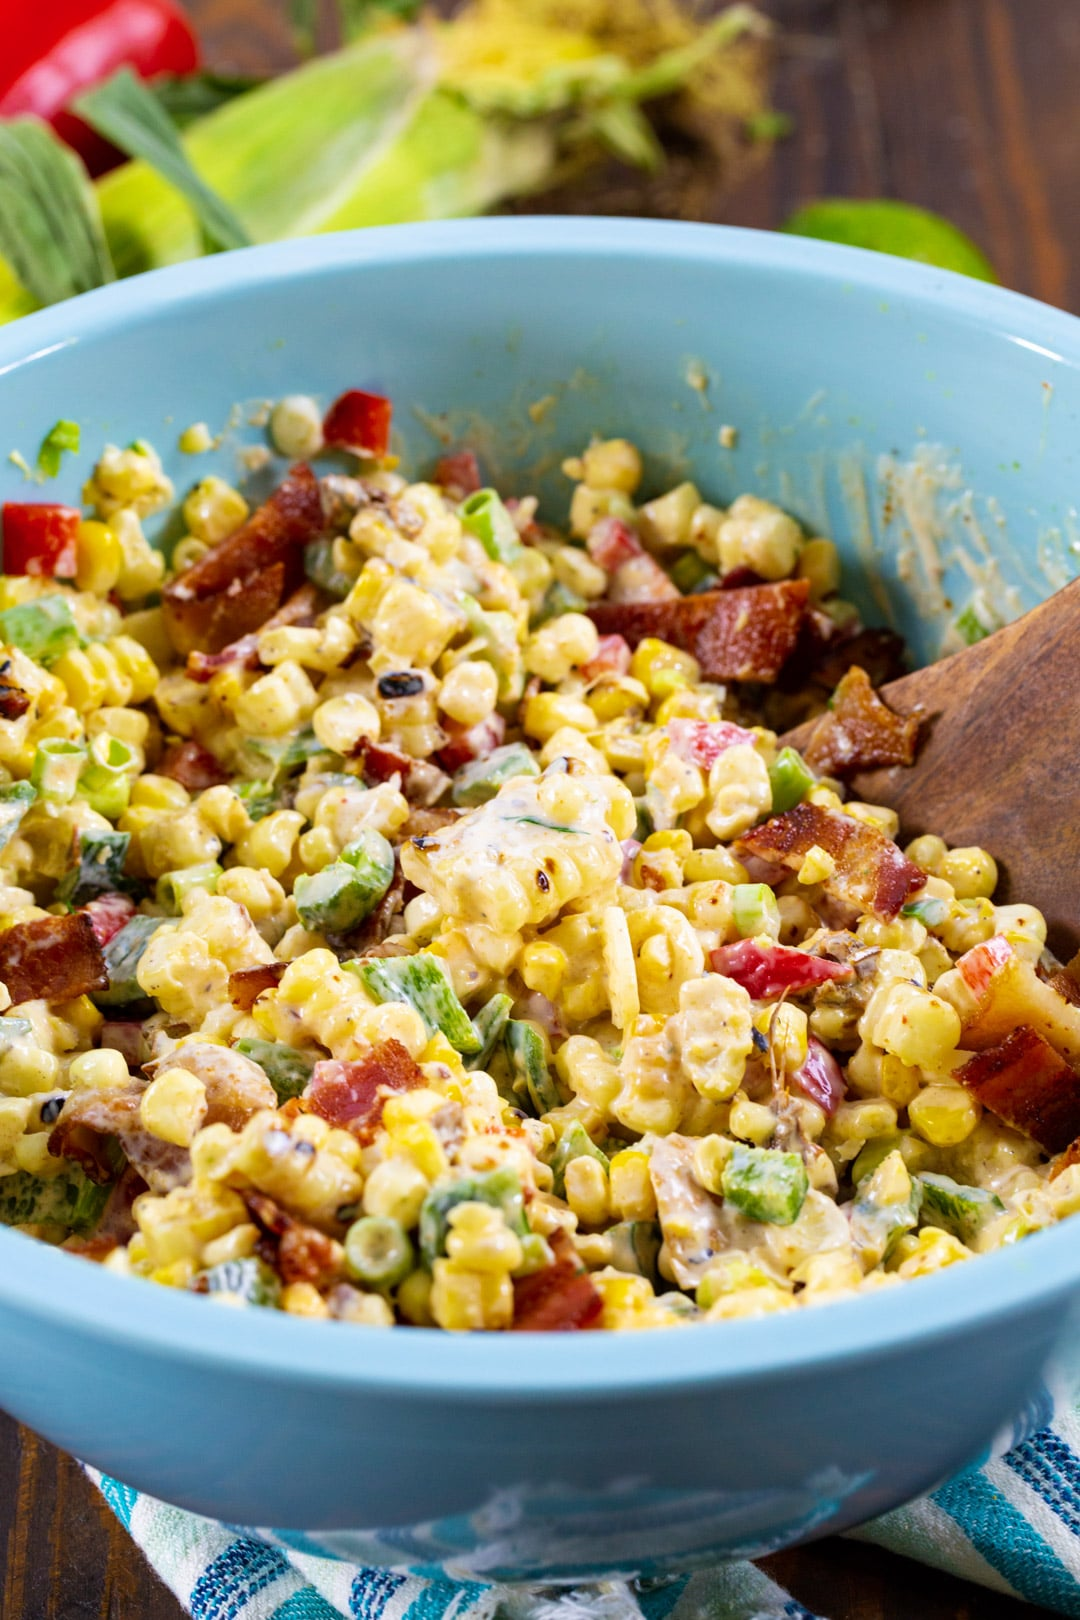 Corn Salad in blue mixing bowl with wooden spoon.